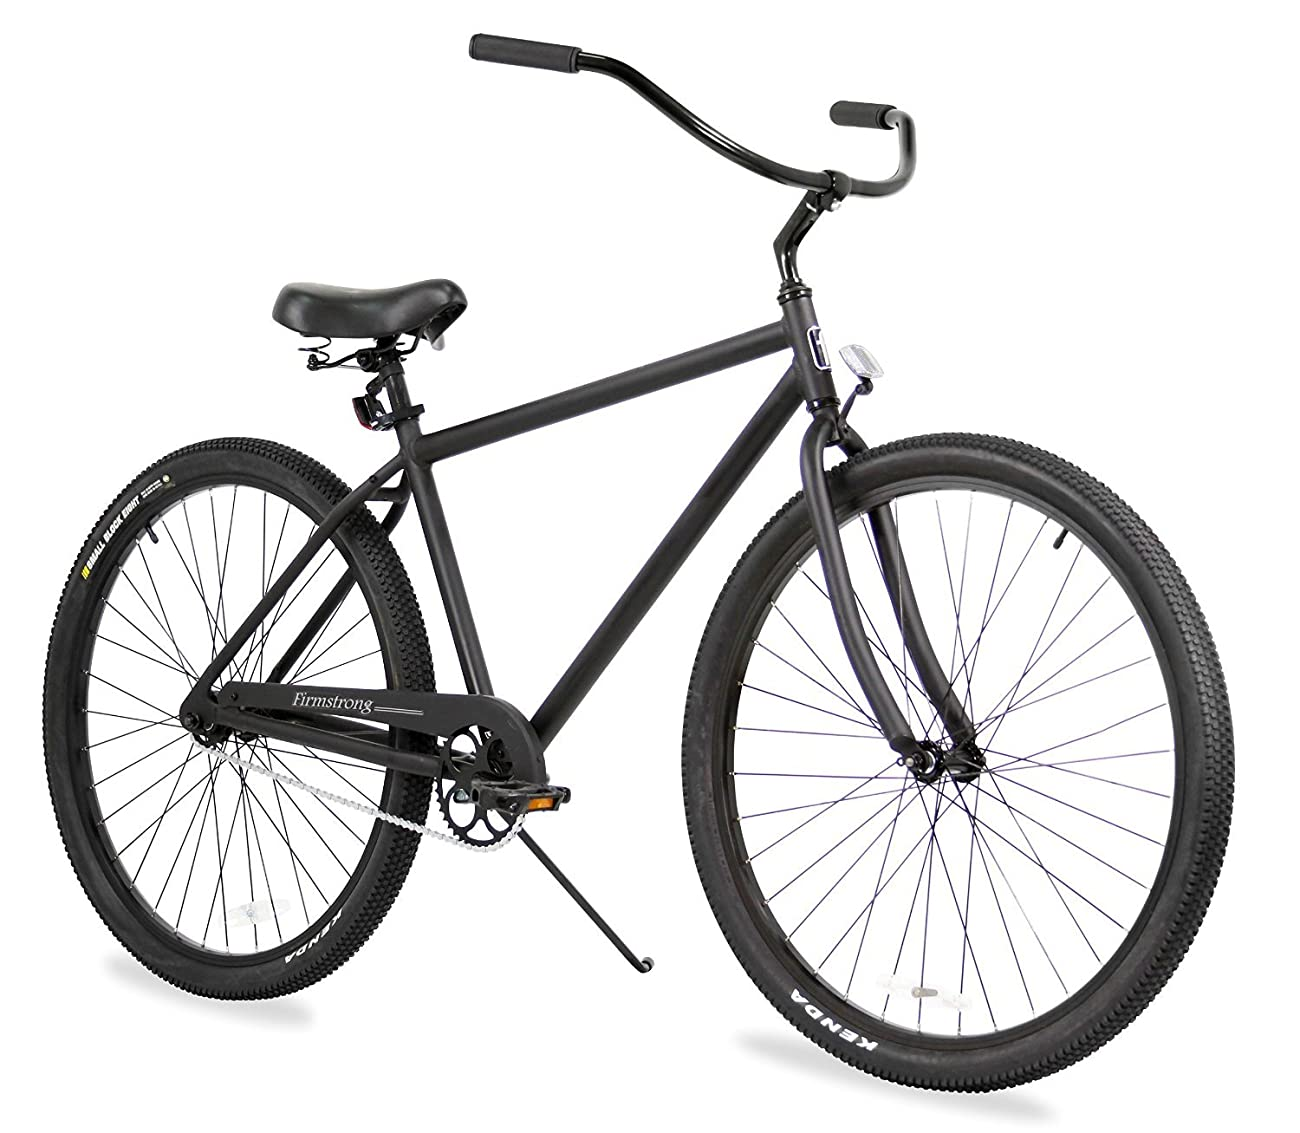 Firmstrong Black Rock Men's Single Speed Beach Cruiser Bicycle, 29-Inch, Matte Black 0